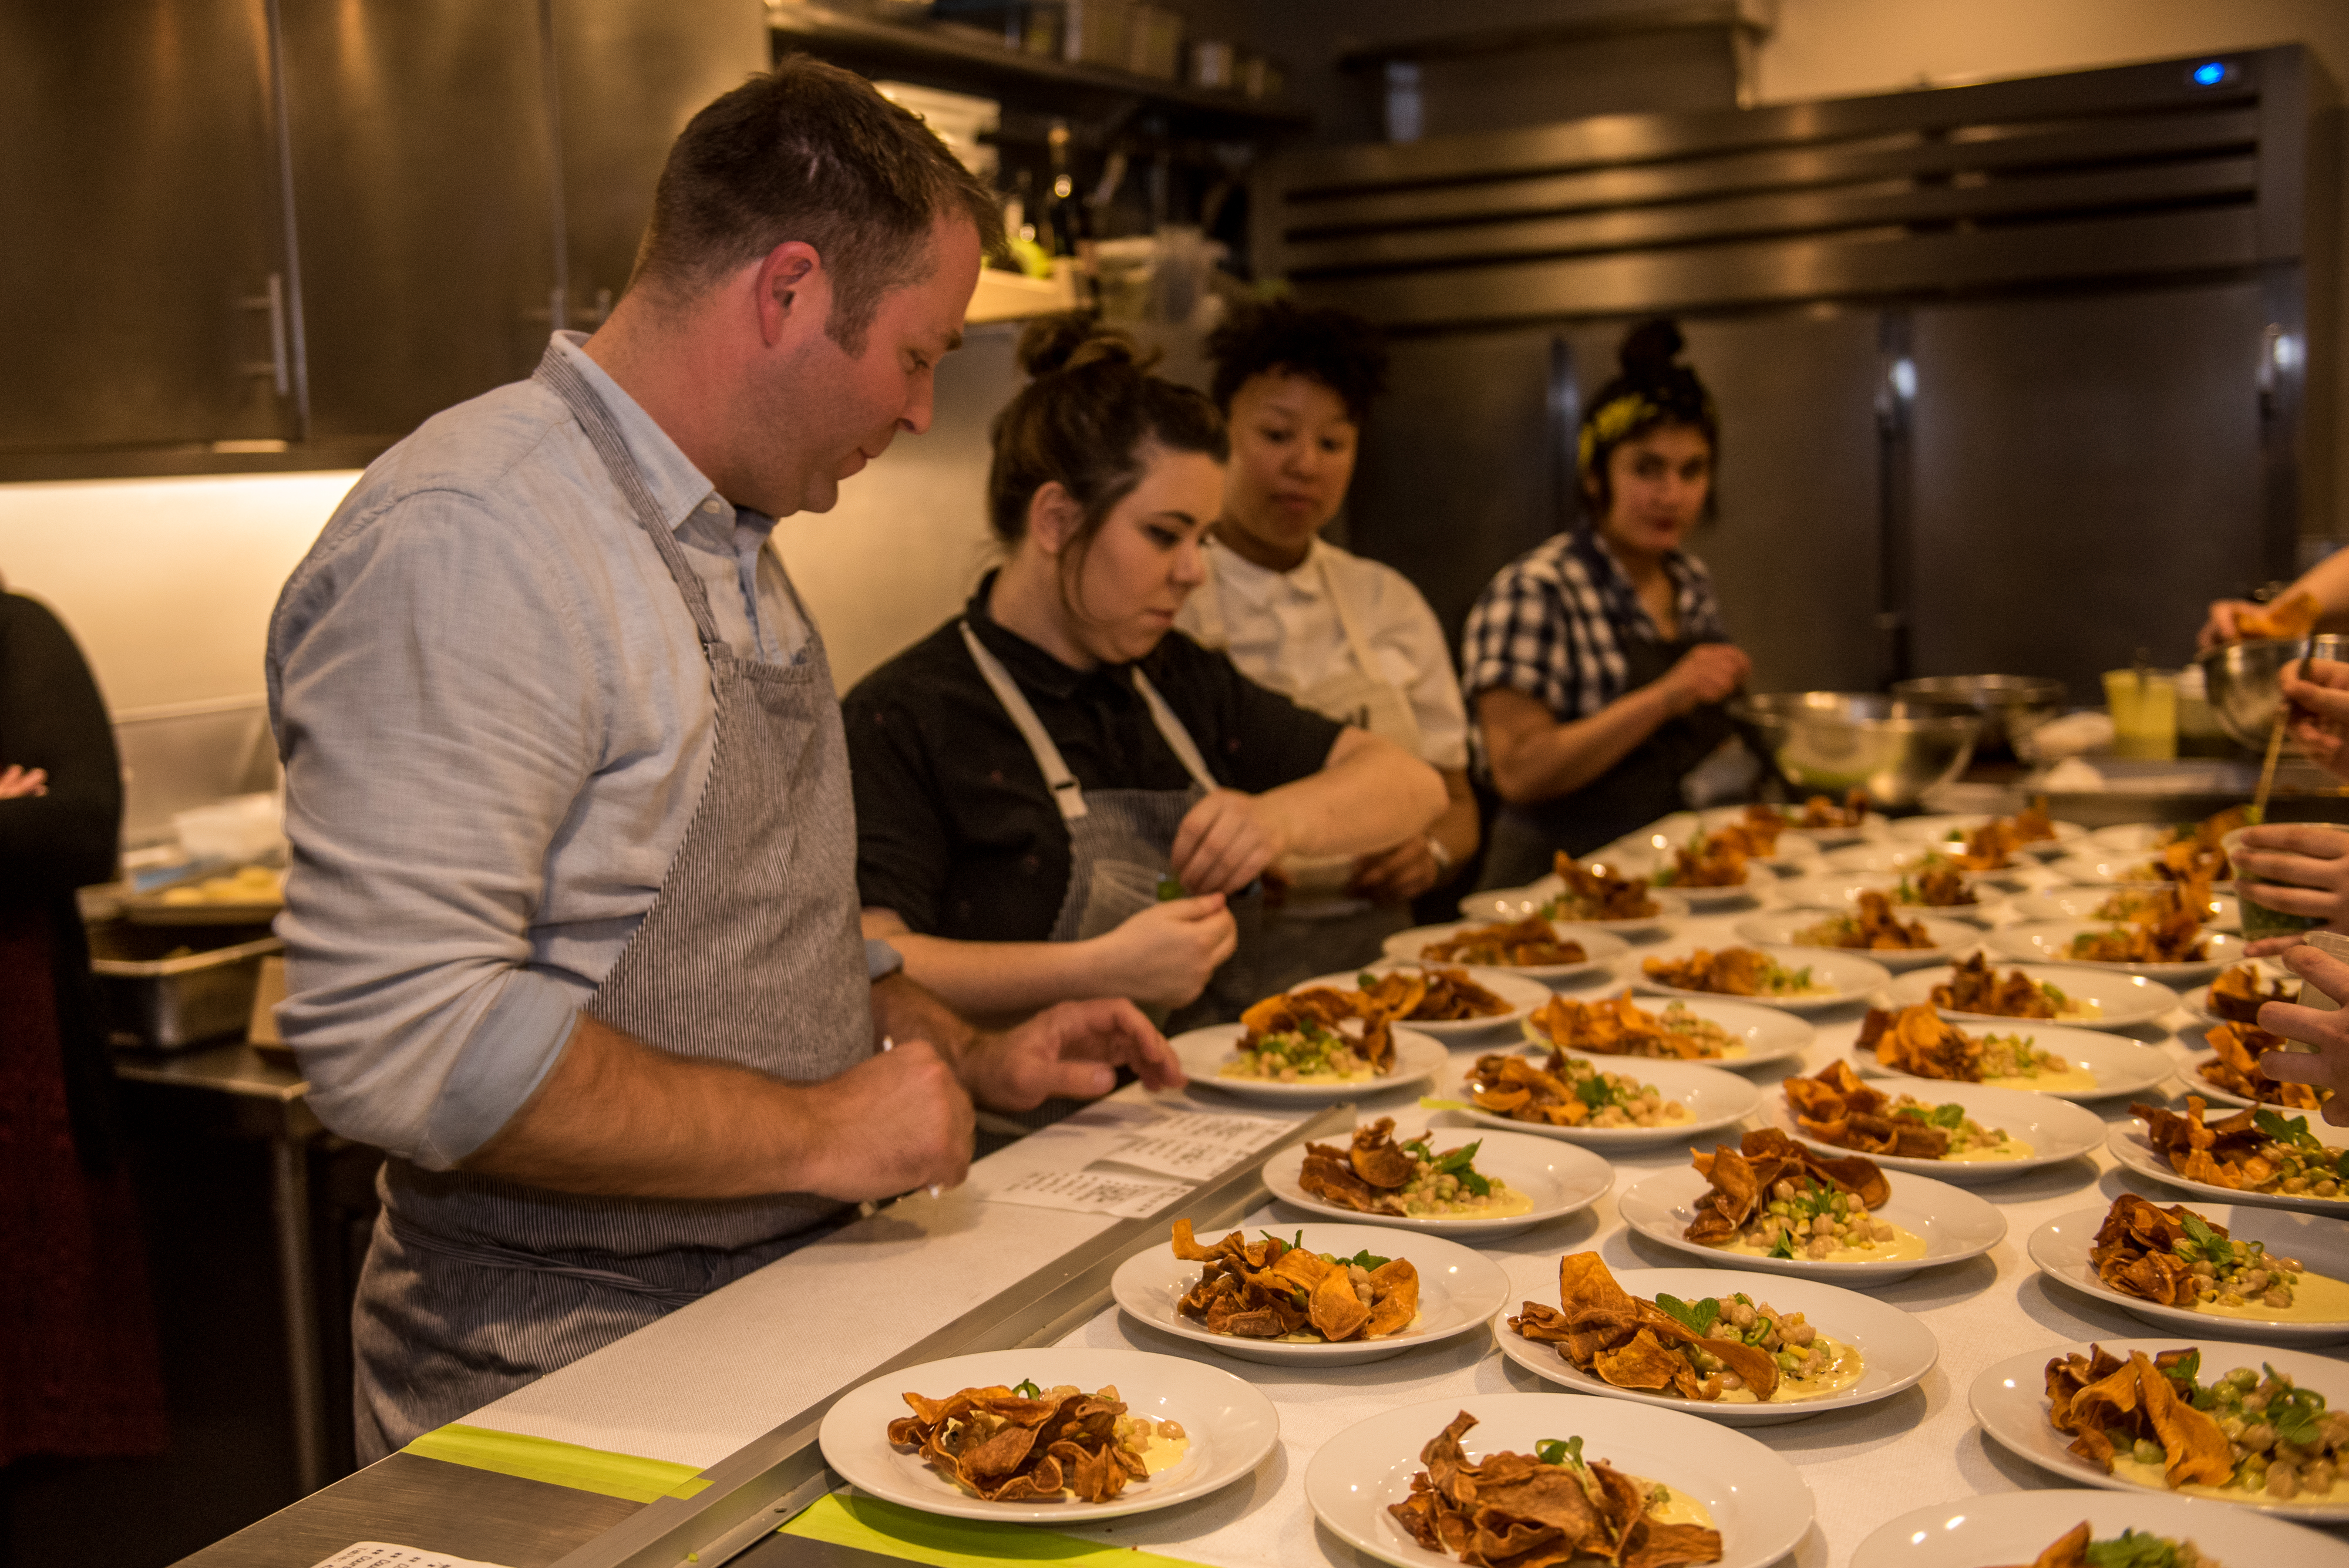 SXSW Partners With James Beard Foundation for SouthBites Dinners Featuring All-Star Chefs